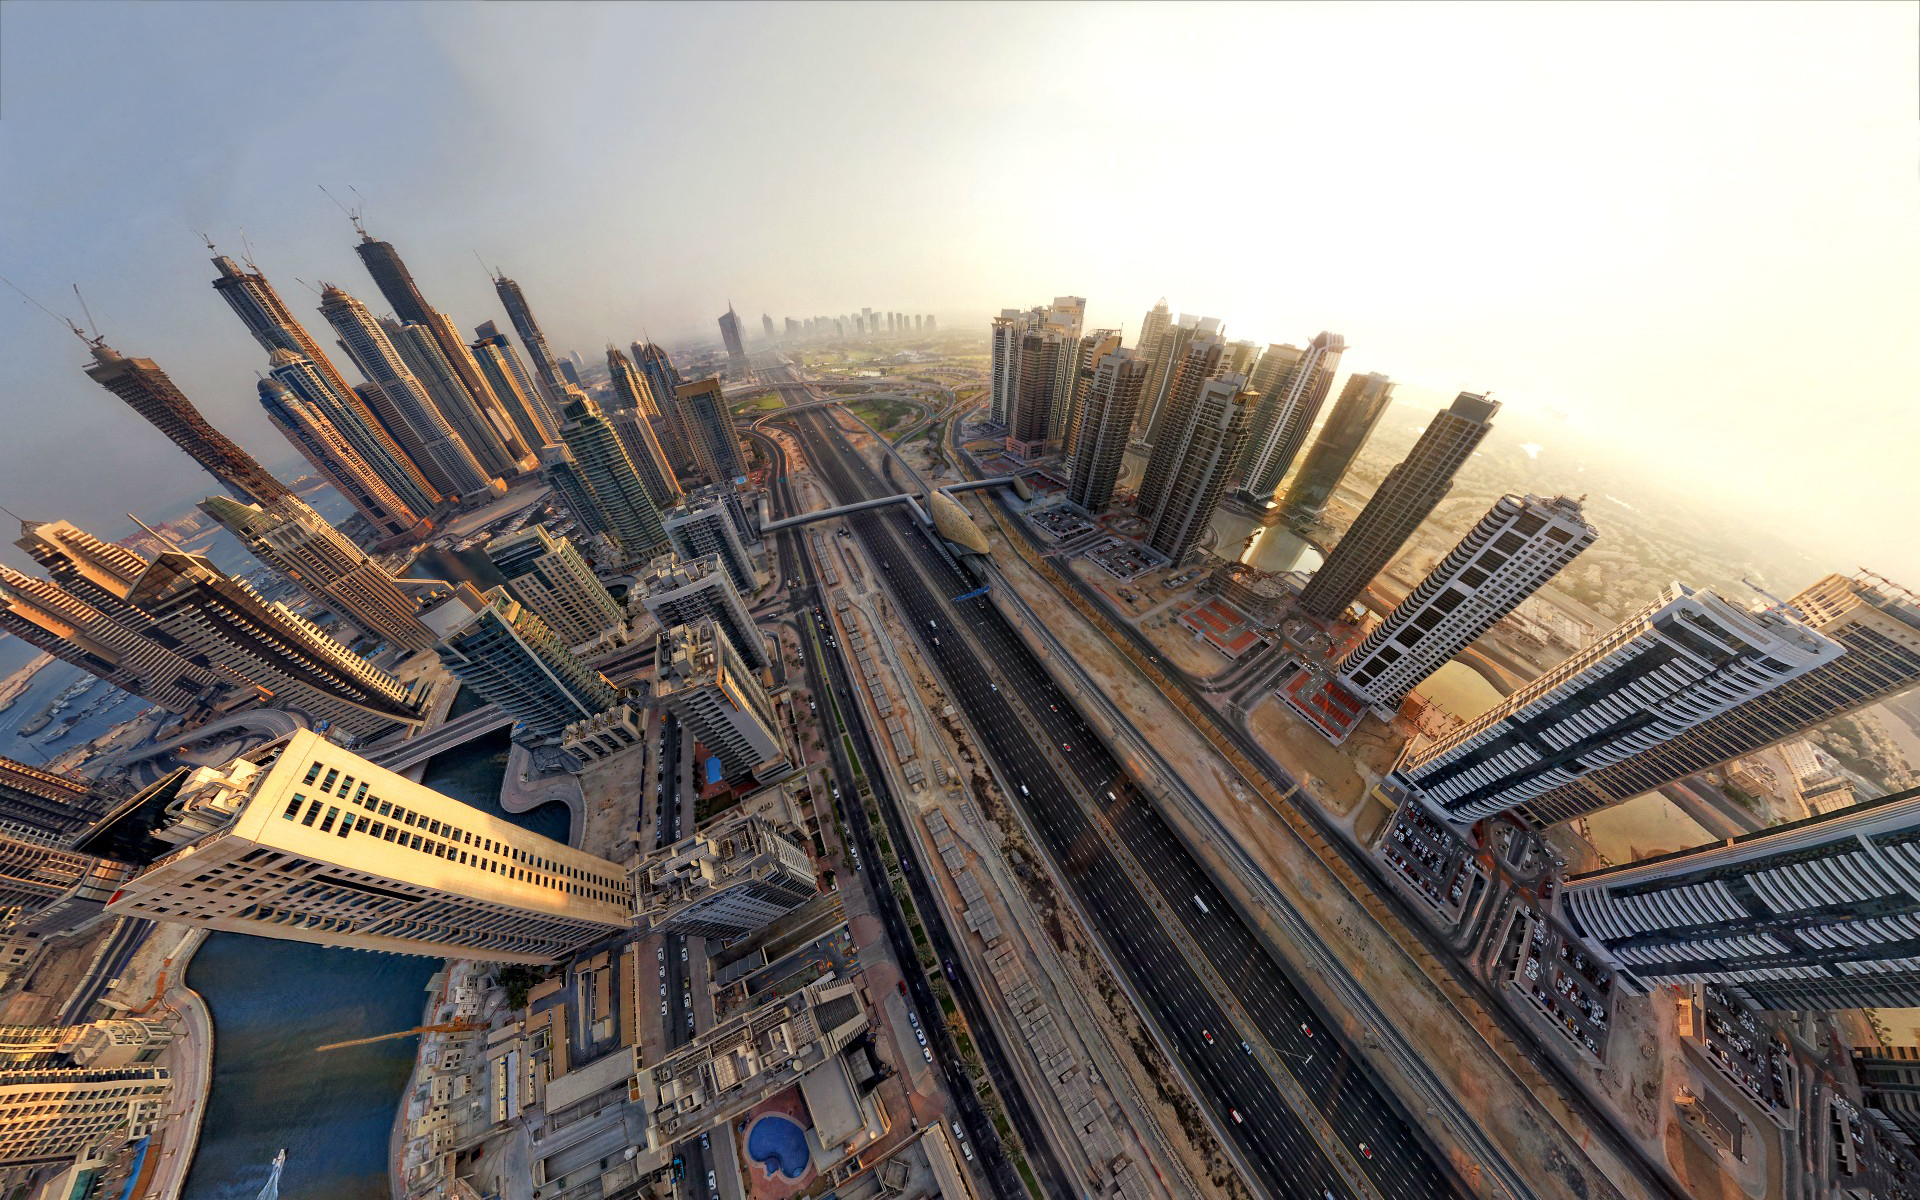 Dubai fisheye view